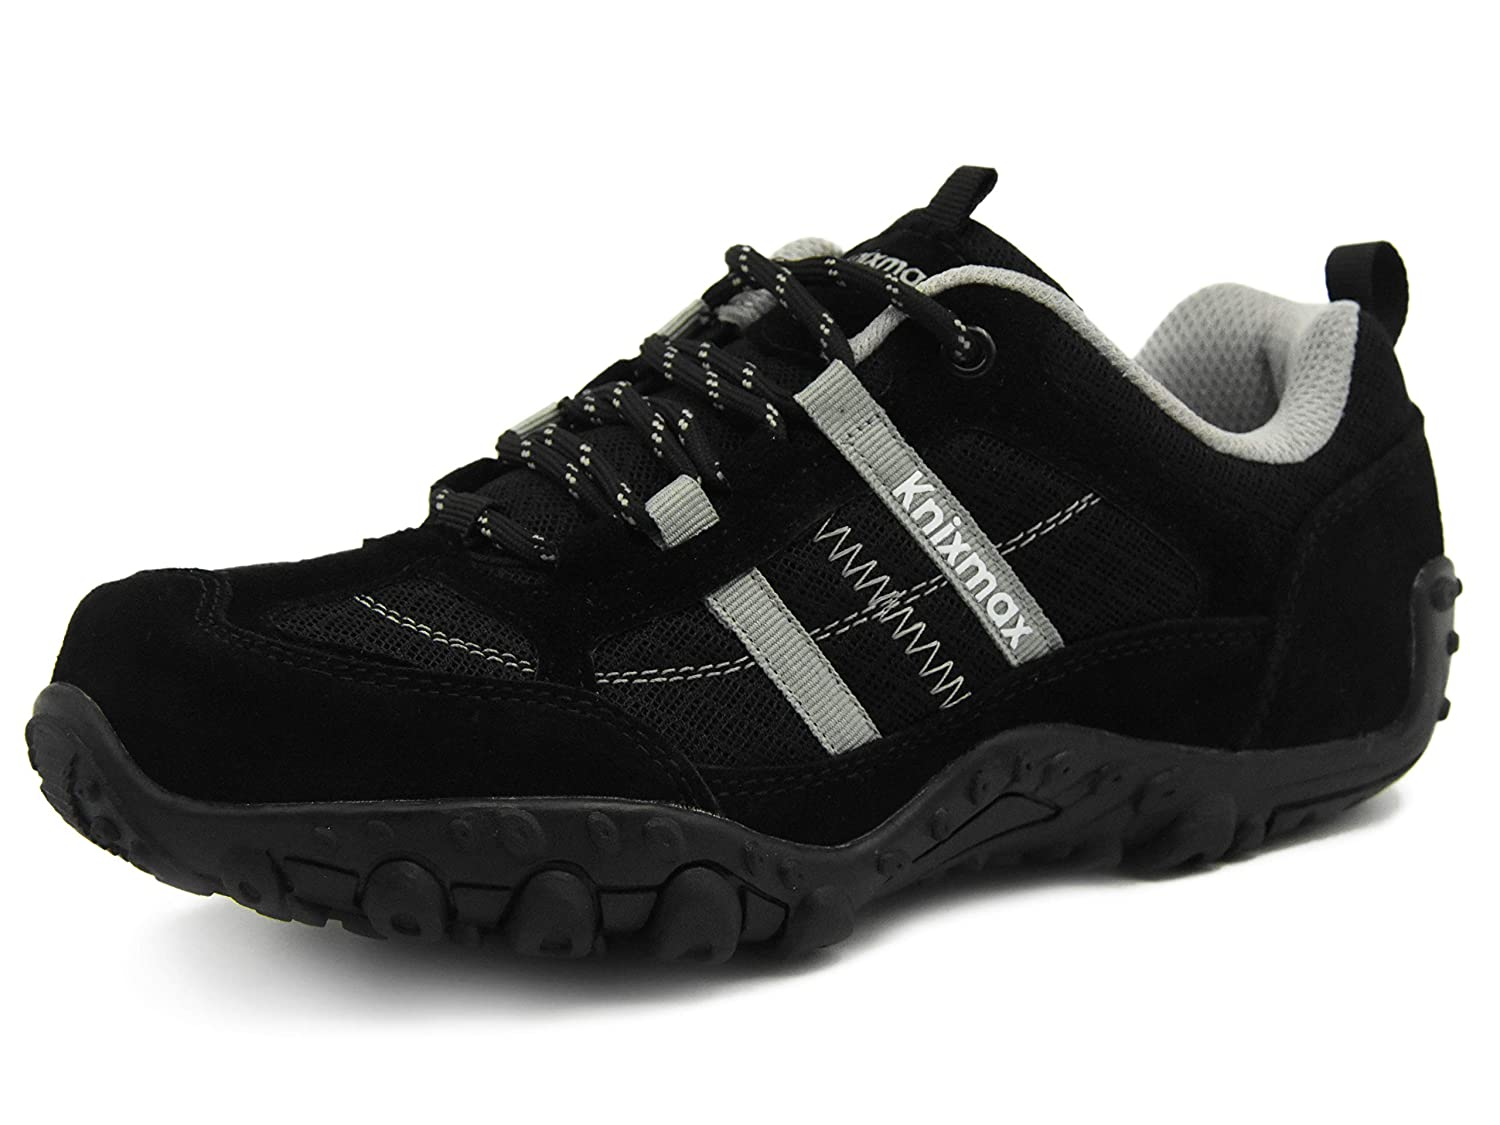 34dfb643657b2 Amazon.com: Knixmax Men's Women's Hiking Shoes Lightweight Walking Trekking  Shoes Low Top Breathable Approach Shoes: Sports & Outdoors